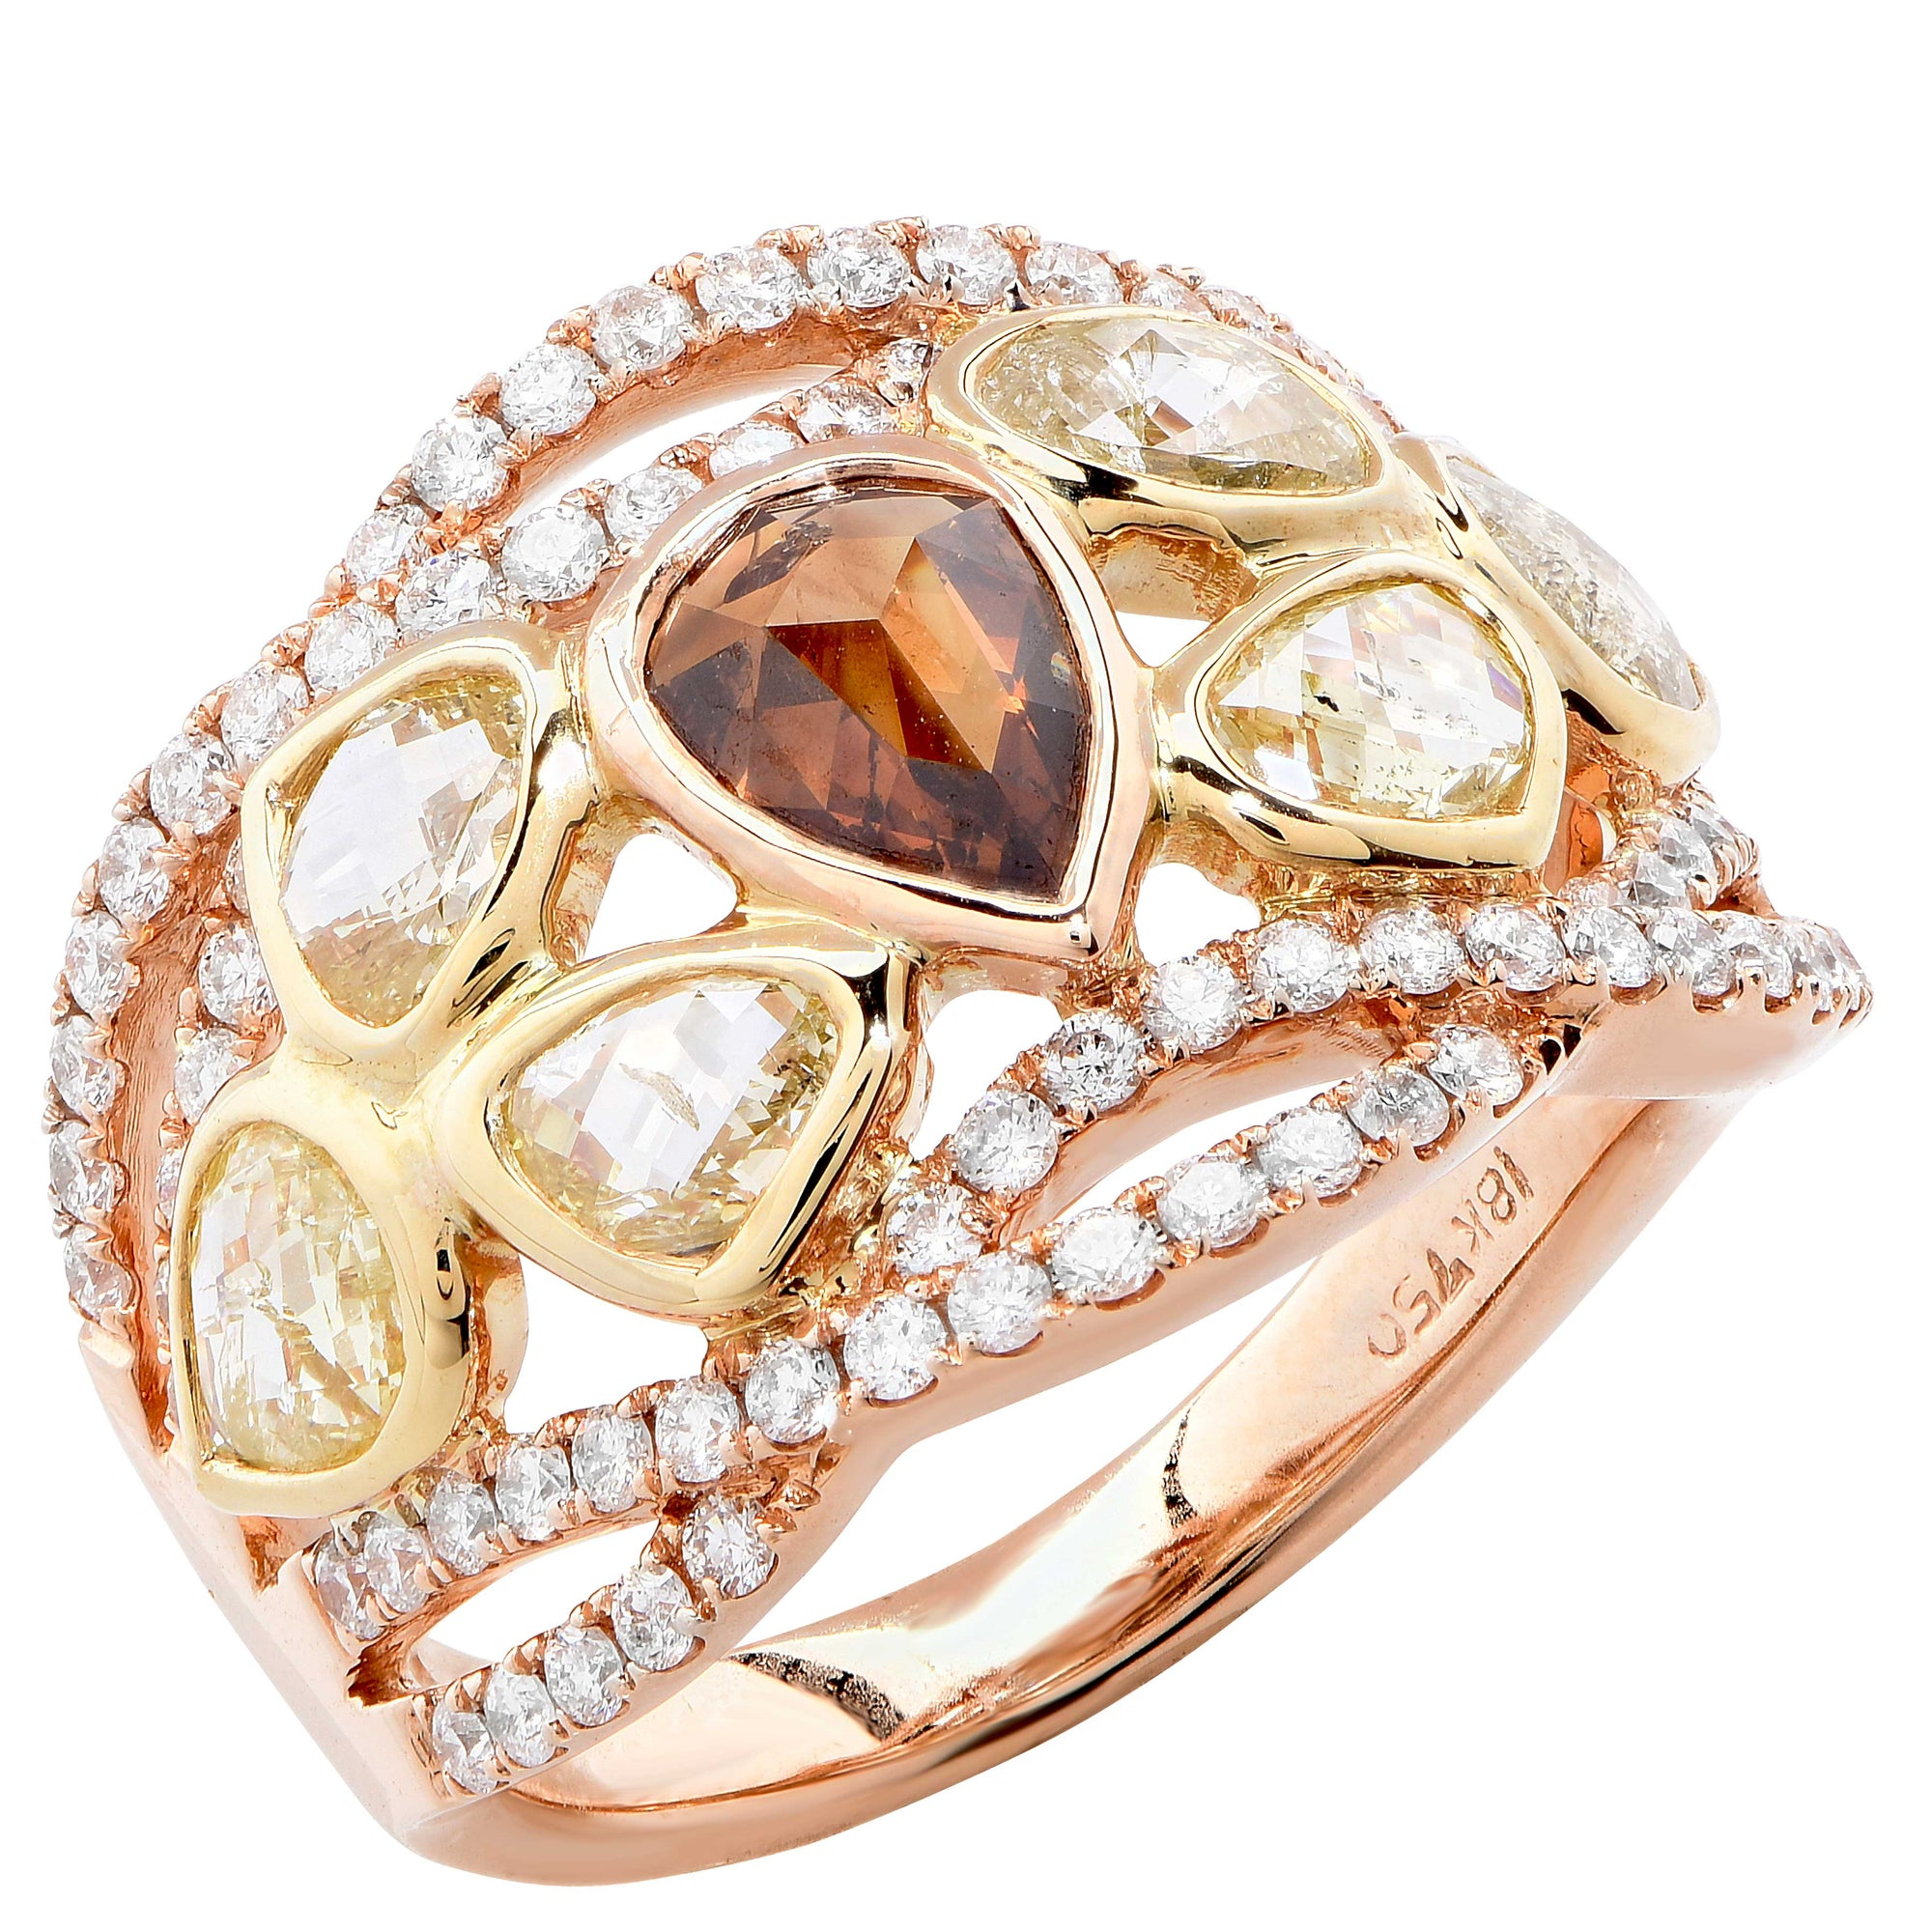 3.08 Carat Fancy Colored Diamond rose gold Ring